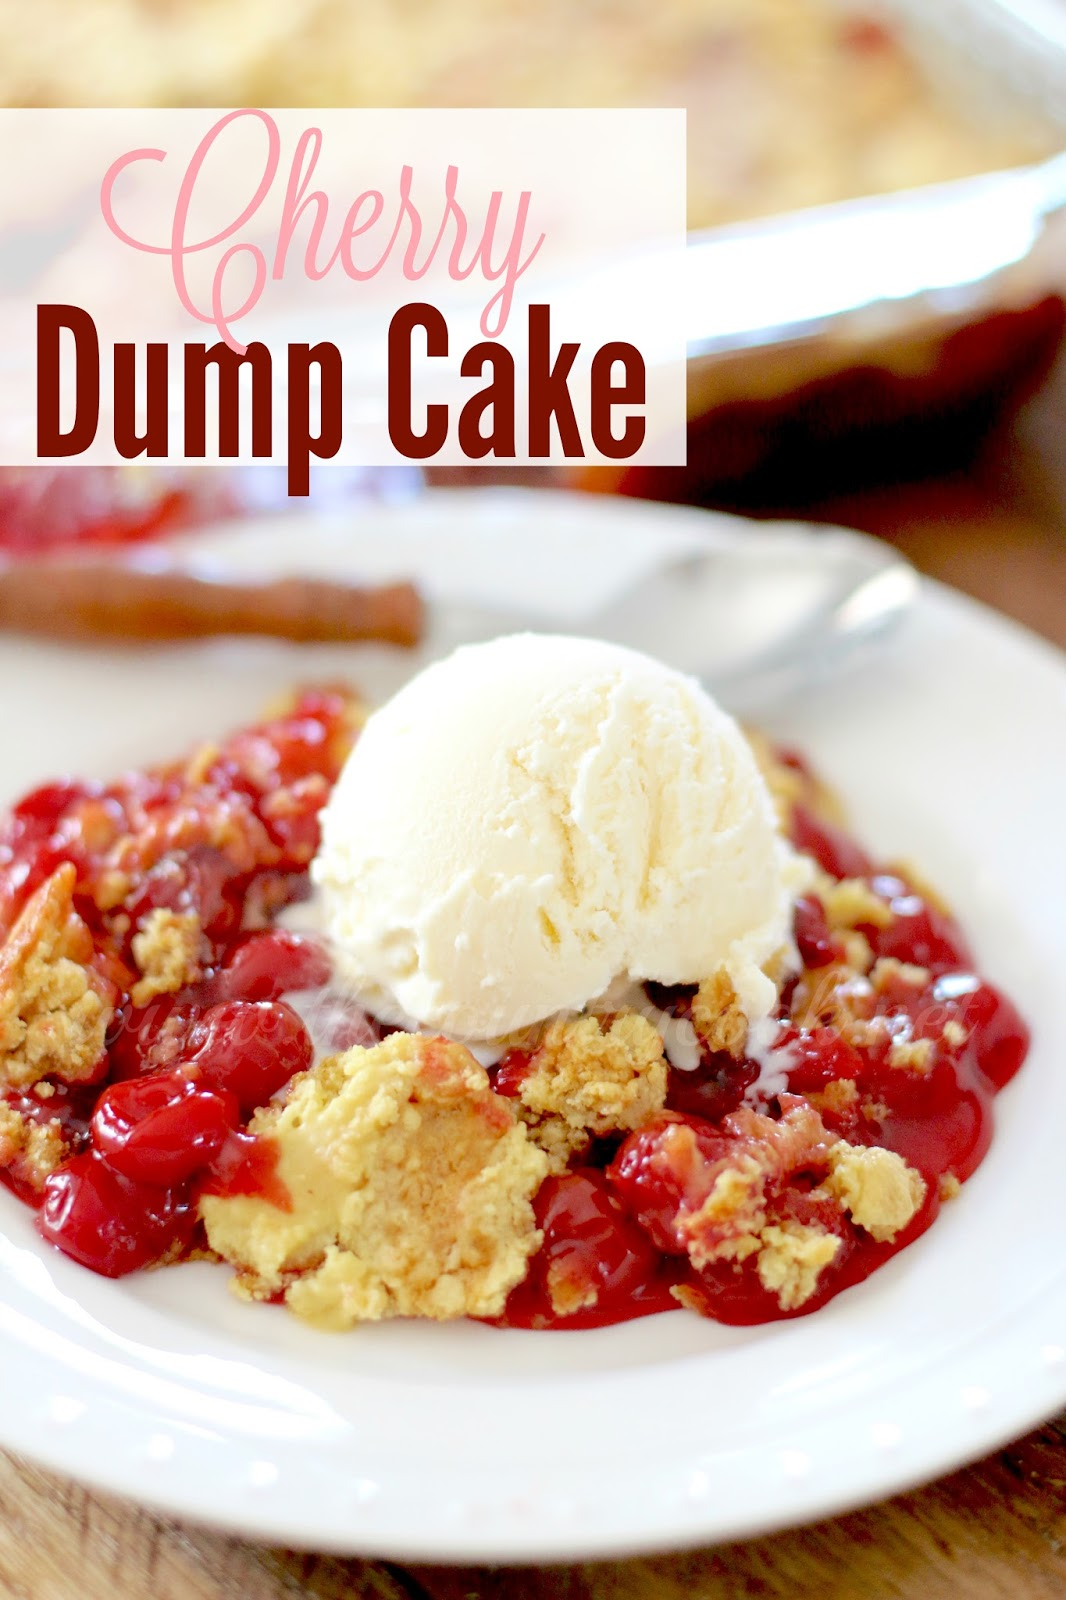 Cherry Dump Cake The Country Cook Watermelon Wallpaper Rainbow Find Free HD for Desktop [freshlhys.tk]